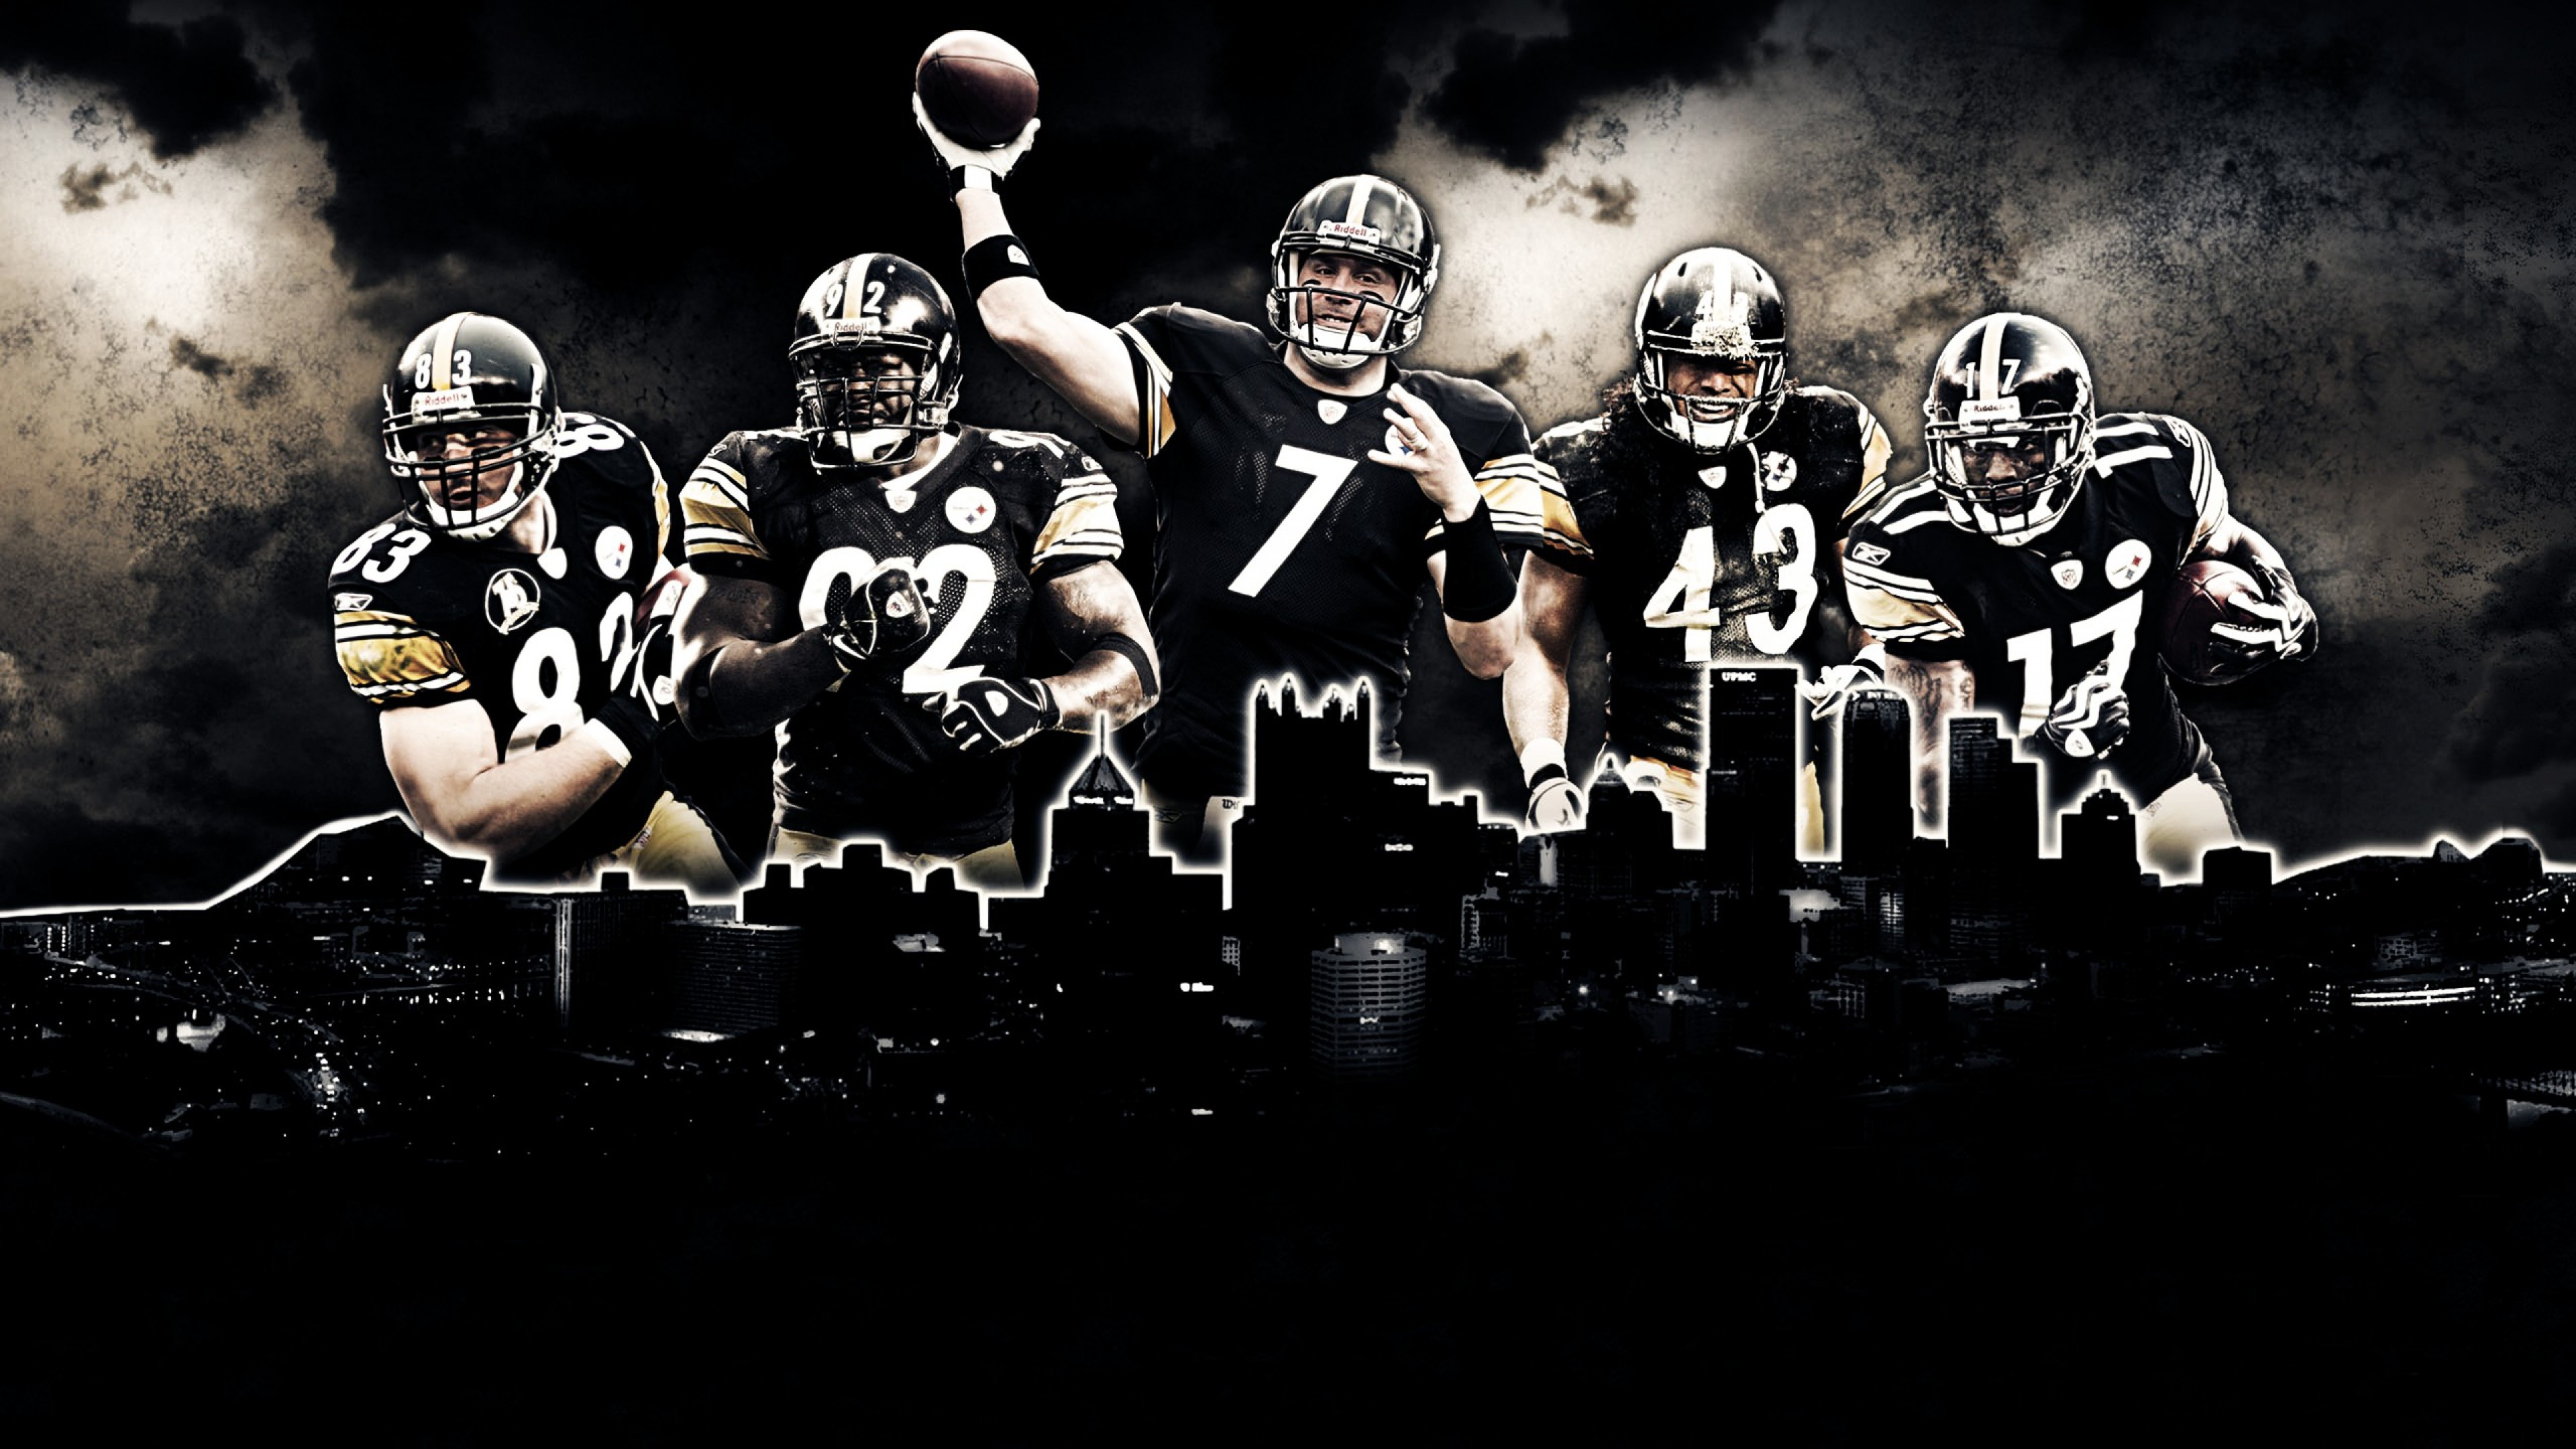 Football Wallpaper NFL 56 images 3840x2160